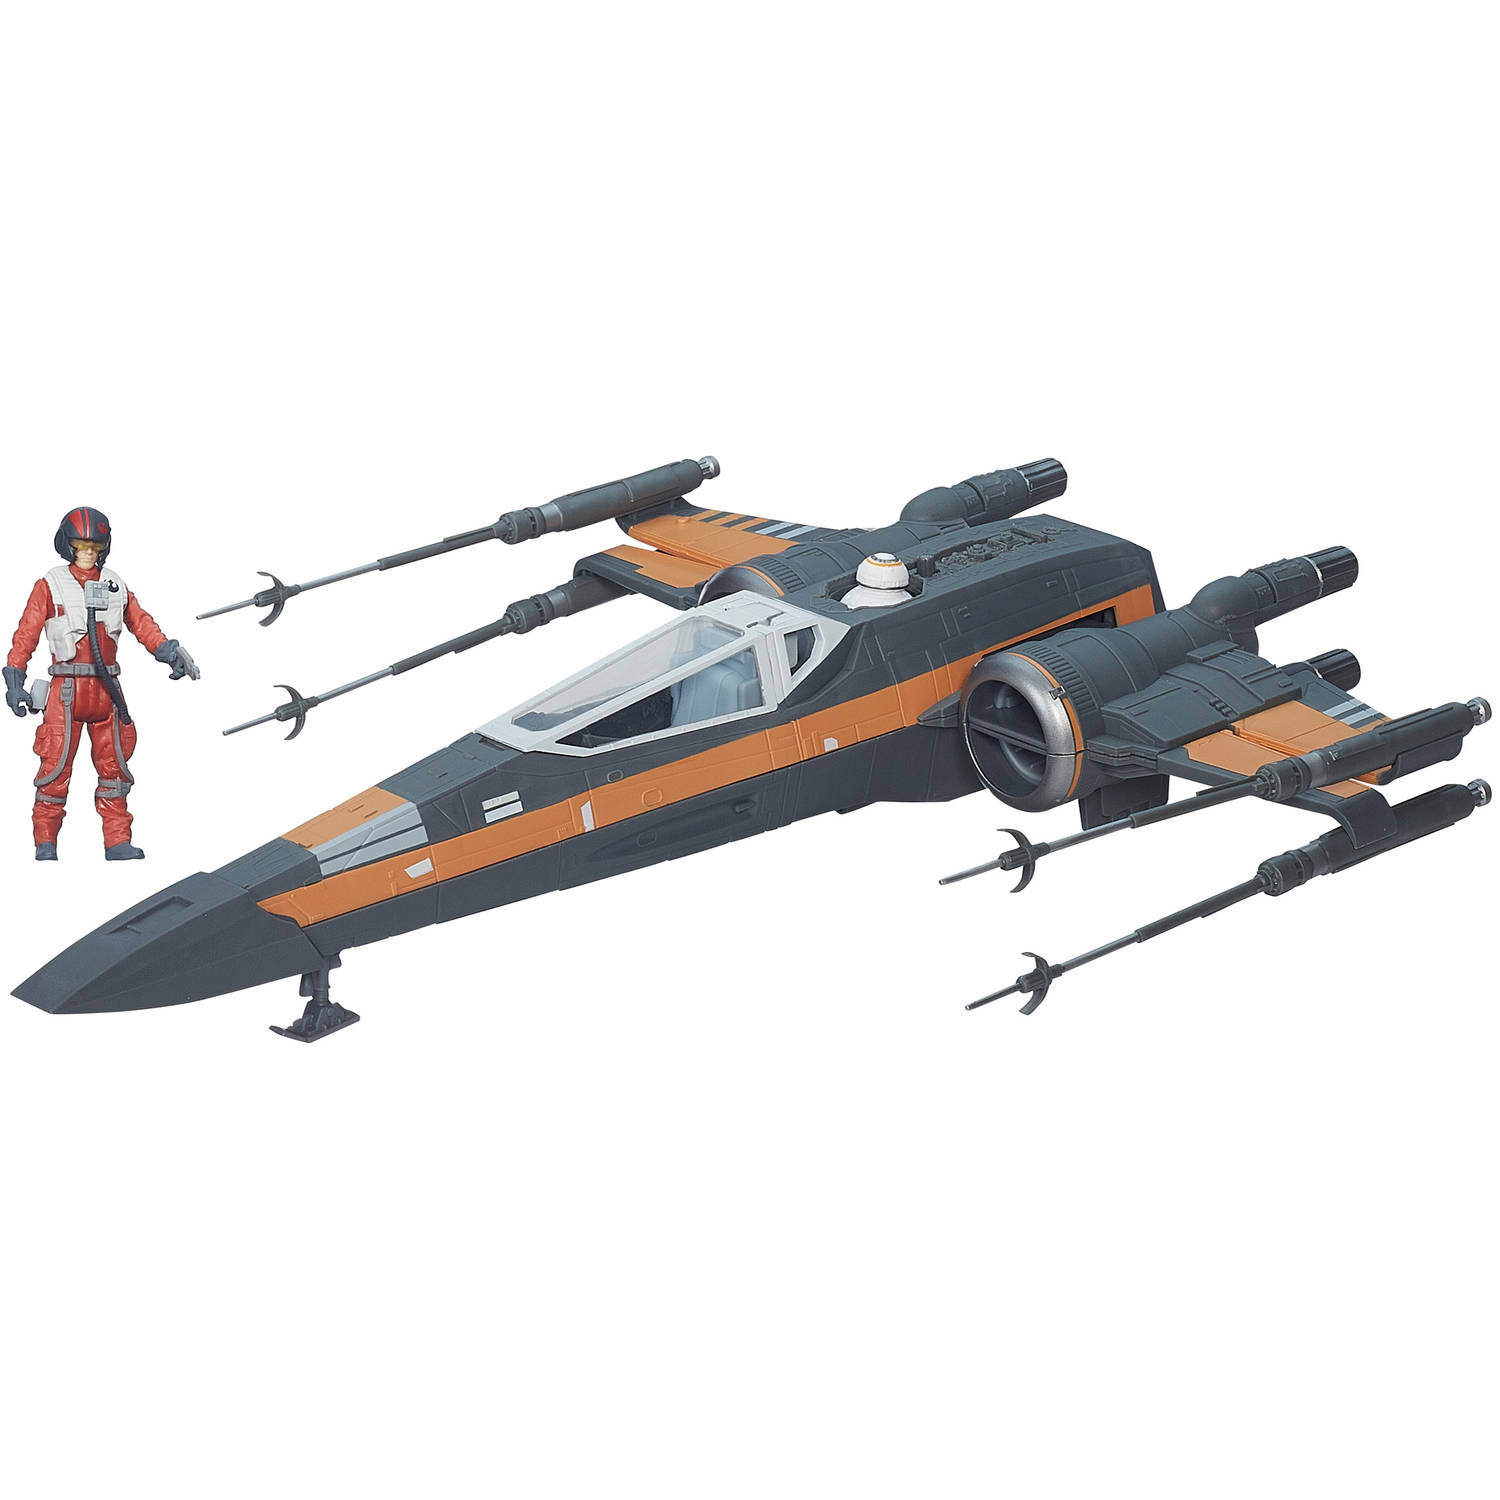 "Star Wars The Force Awakens 3.75"" Vehicle Poe Dameron's X-Wing"